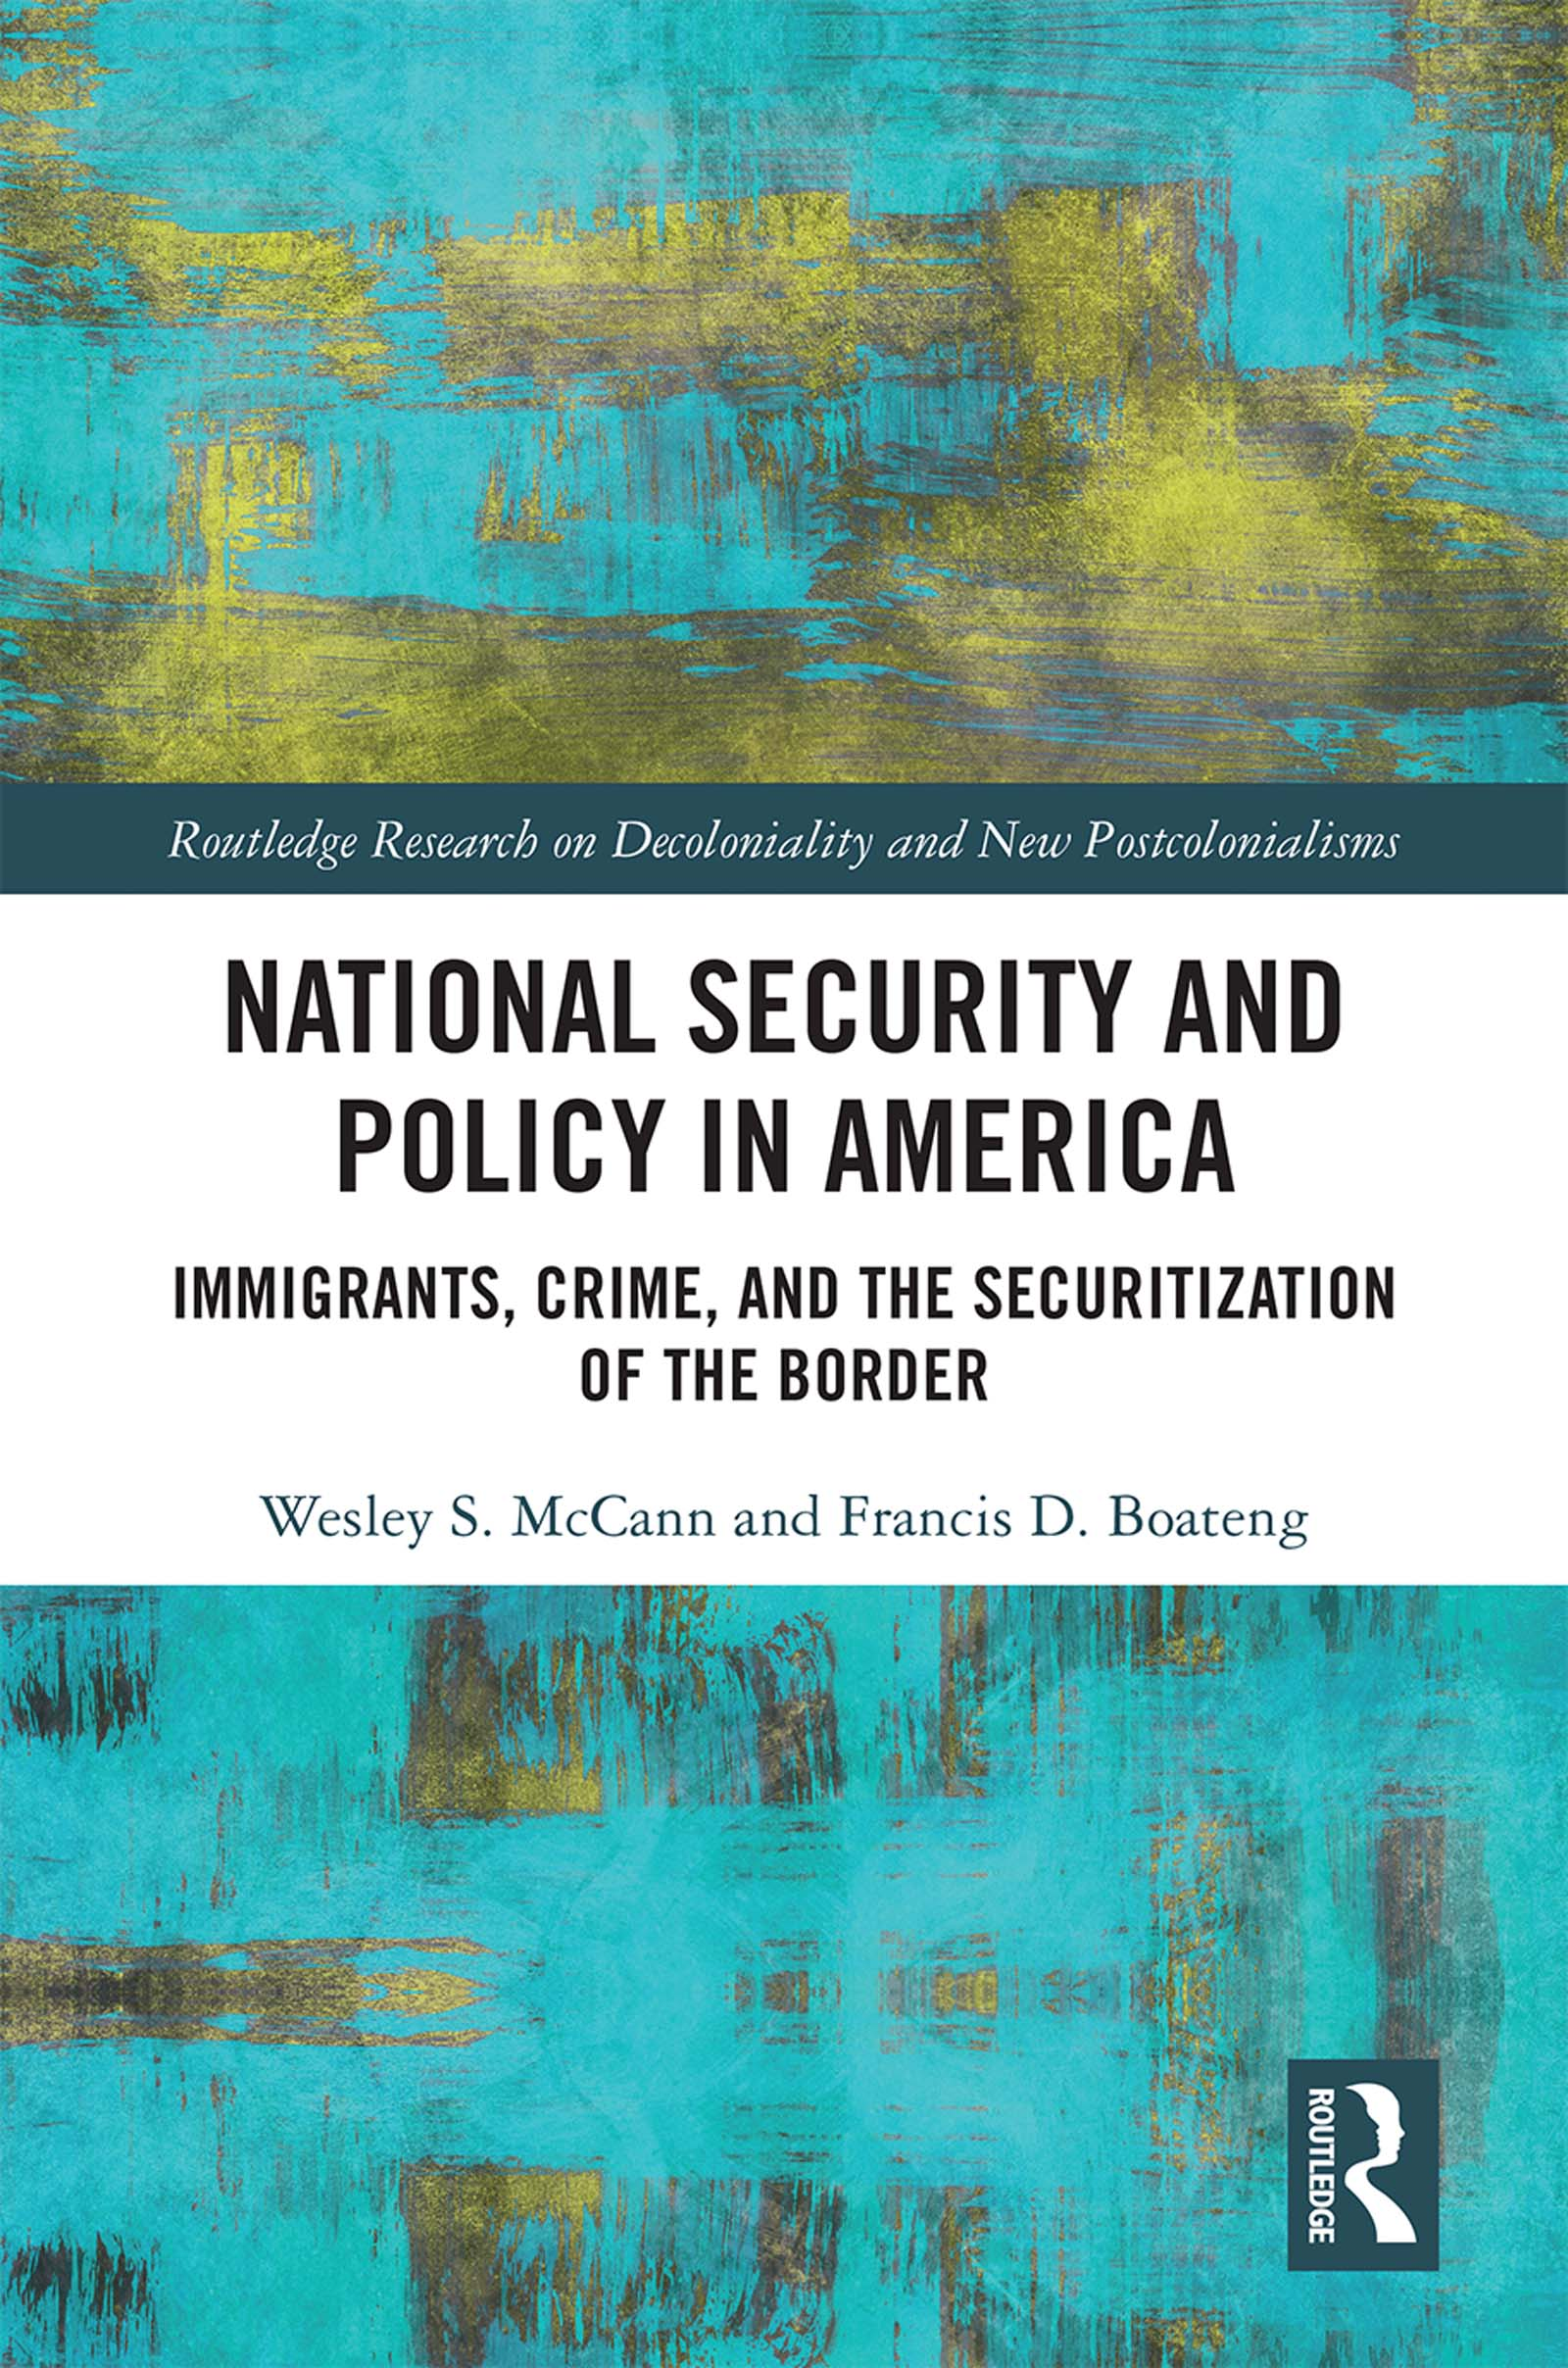 National Security and Policy in America: Immigrants, Crime, and the Securitization of the Border book cover